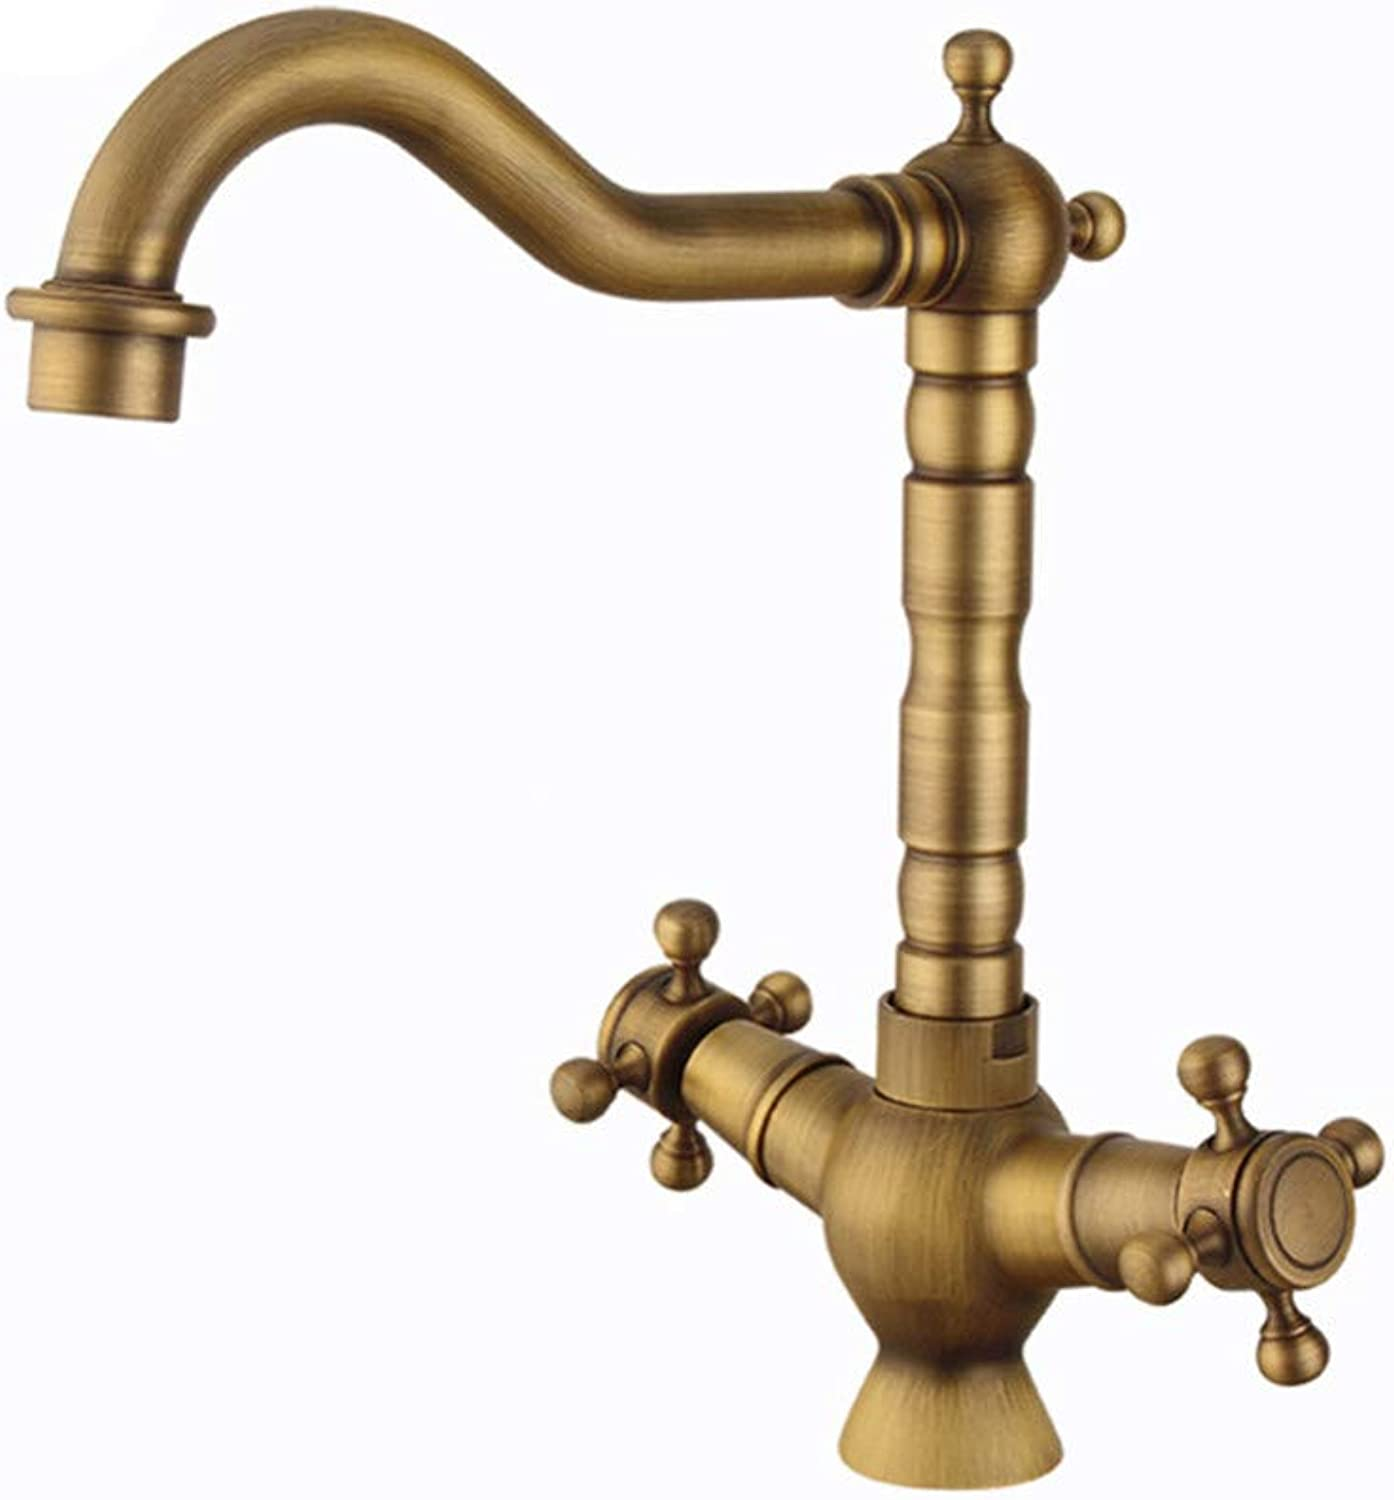 PajCzh Sink Bathroom Sink Taps Copper European Hot And Cold Faucet Retro Spiral Kitchen Faucet Household Basin Faucet